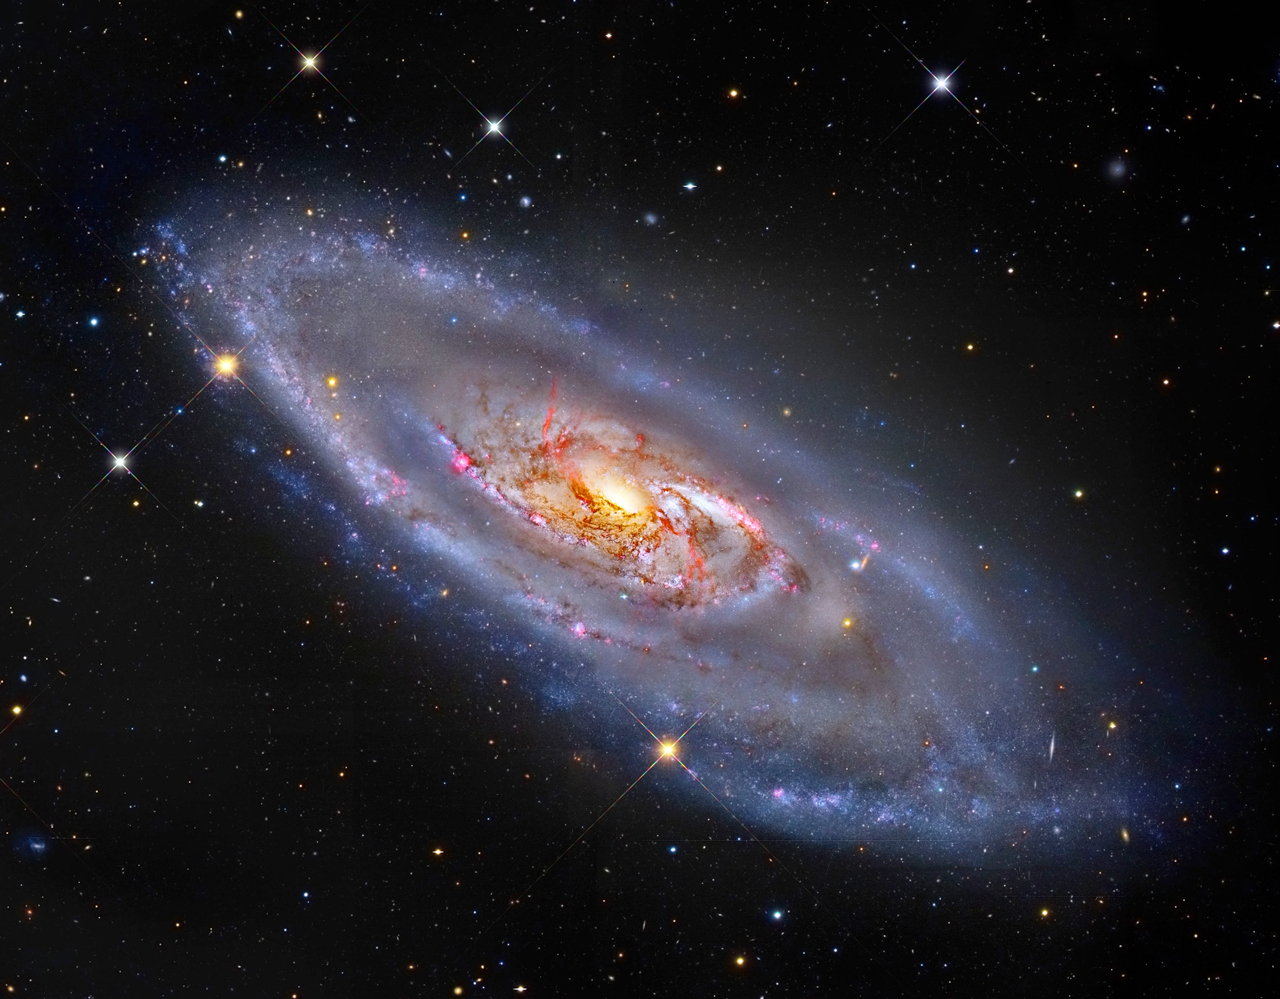 galaxies in the universe poster - photo #33